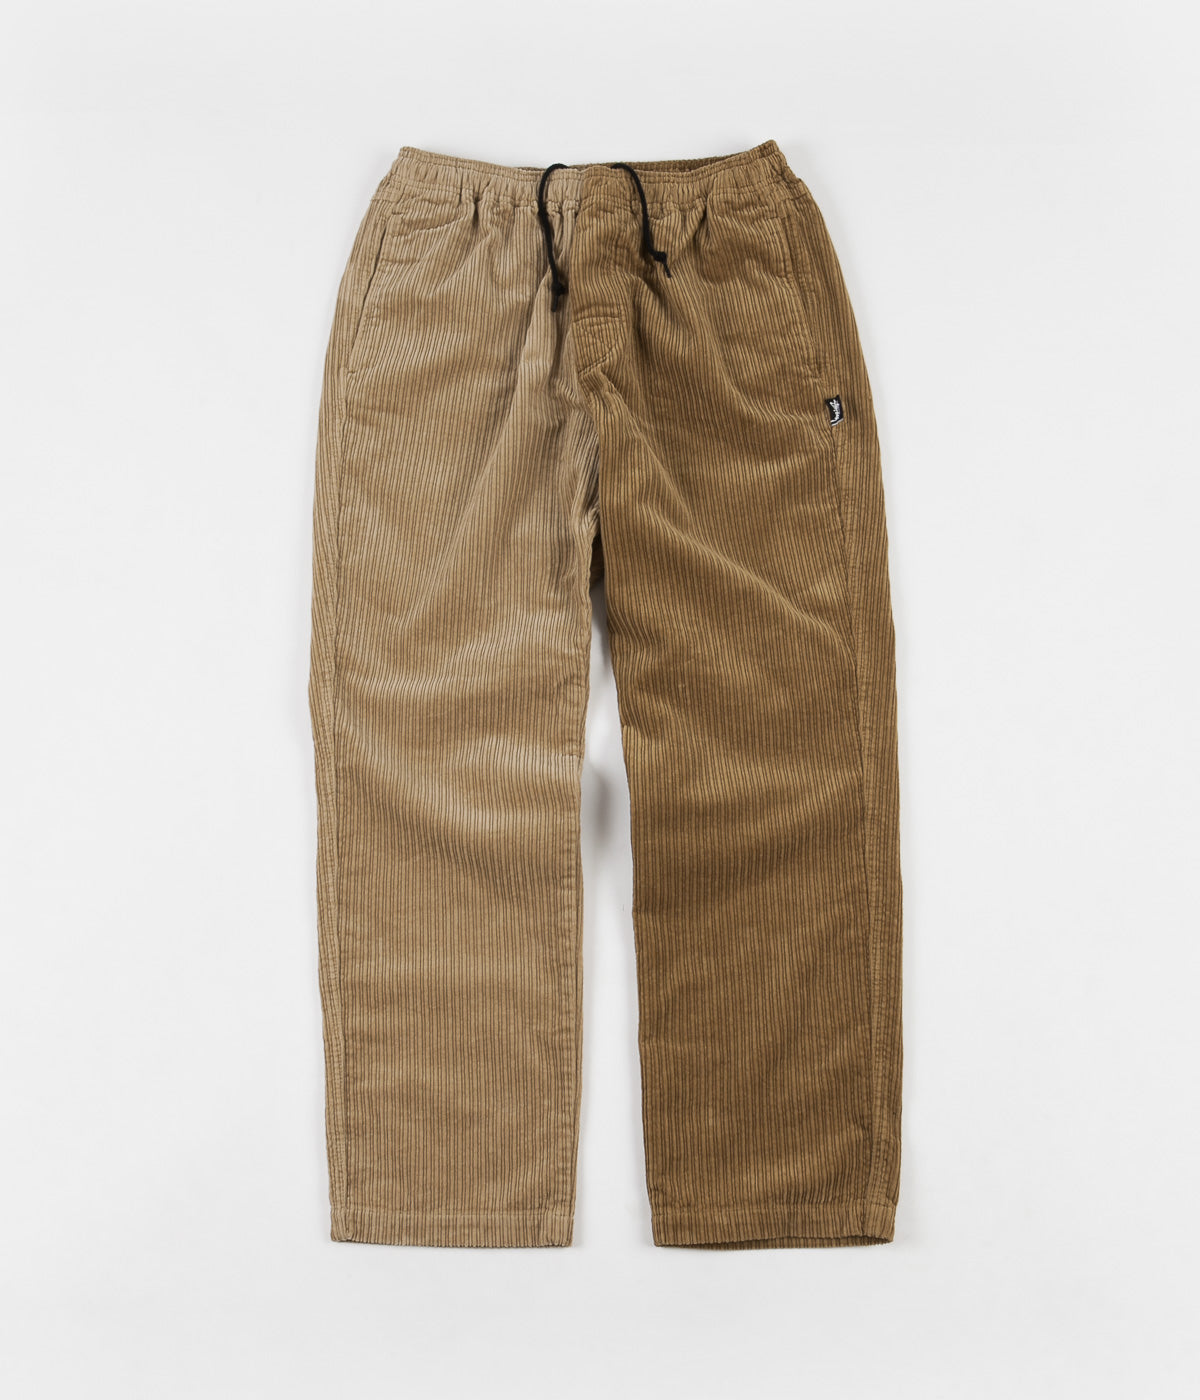 Stussy Mix Up Cord Beach Pants - Brown